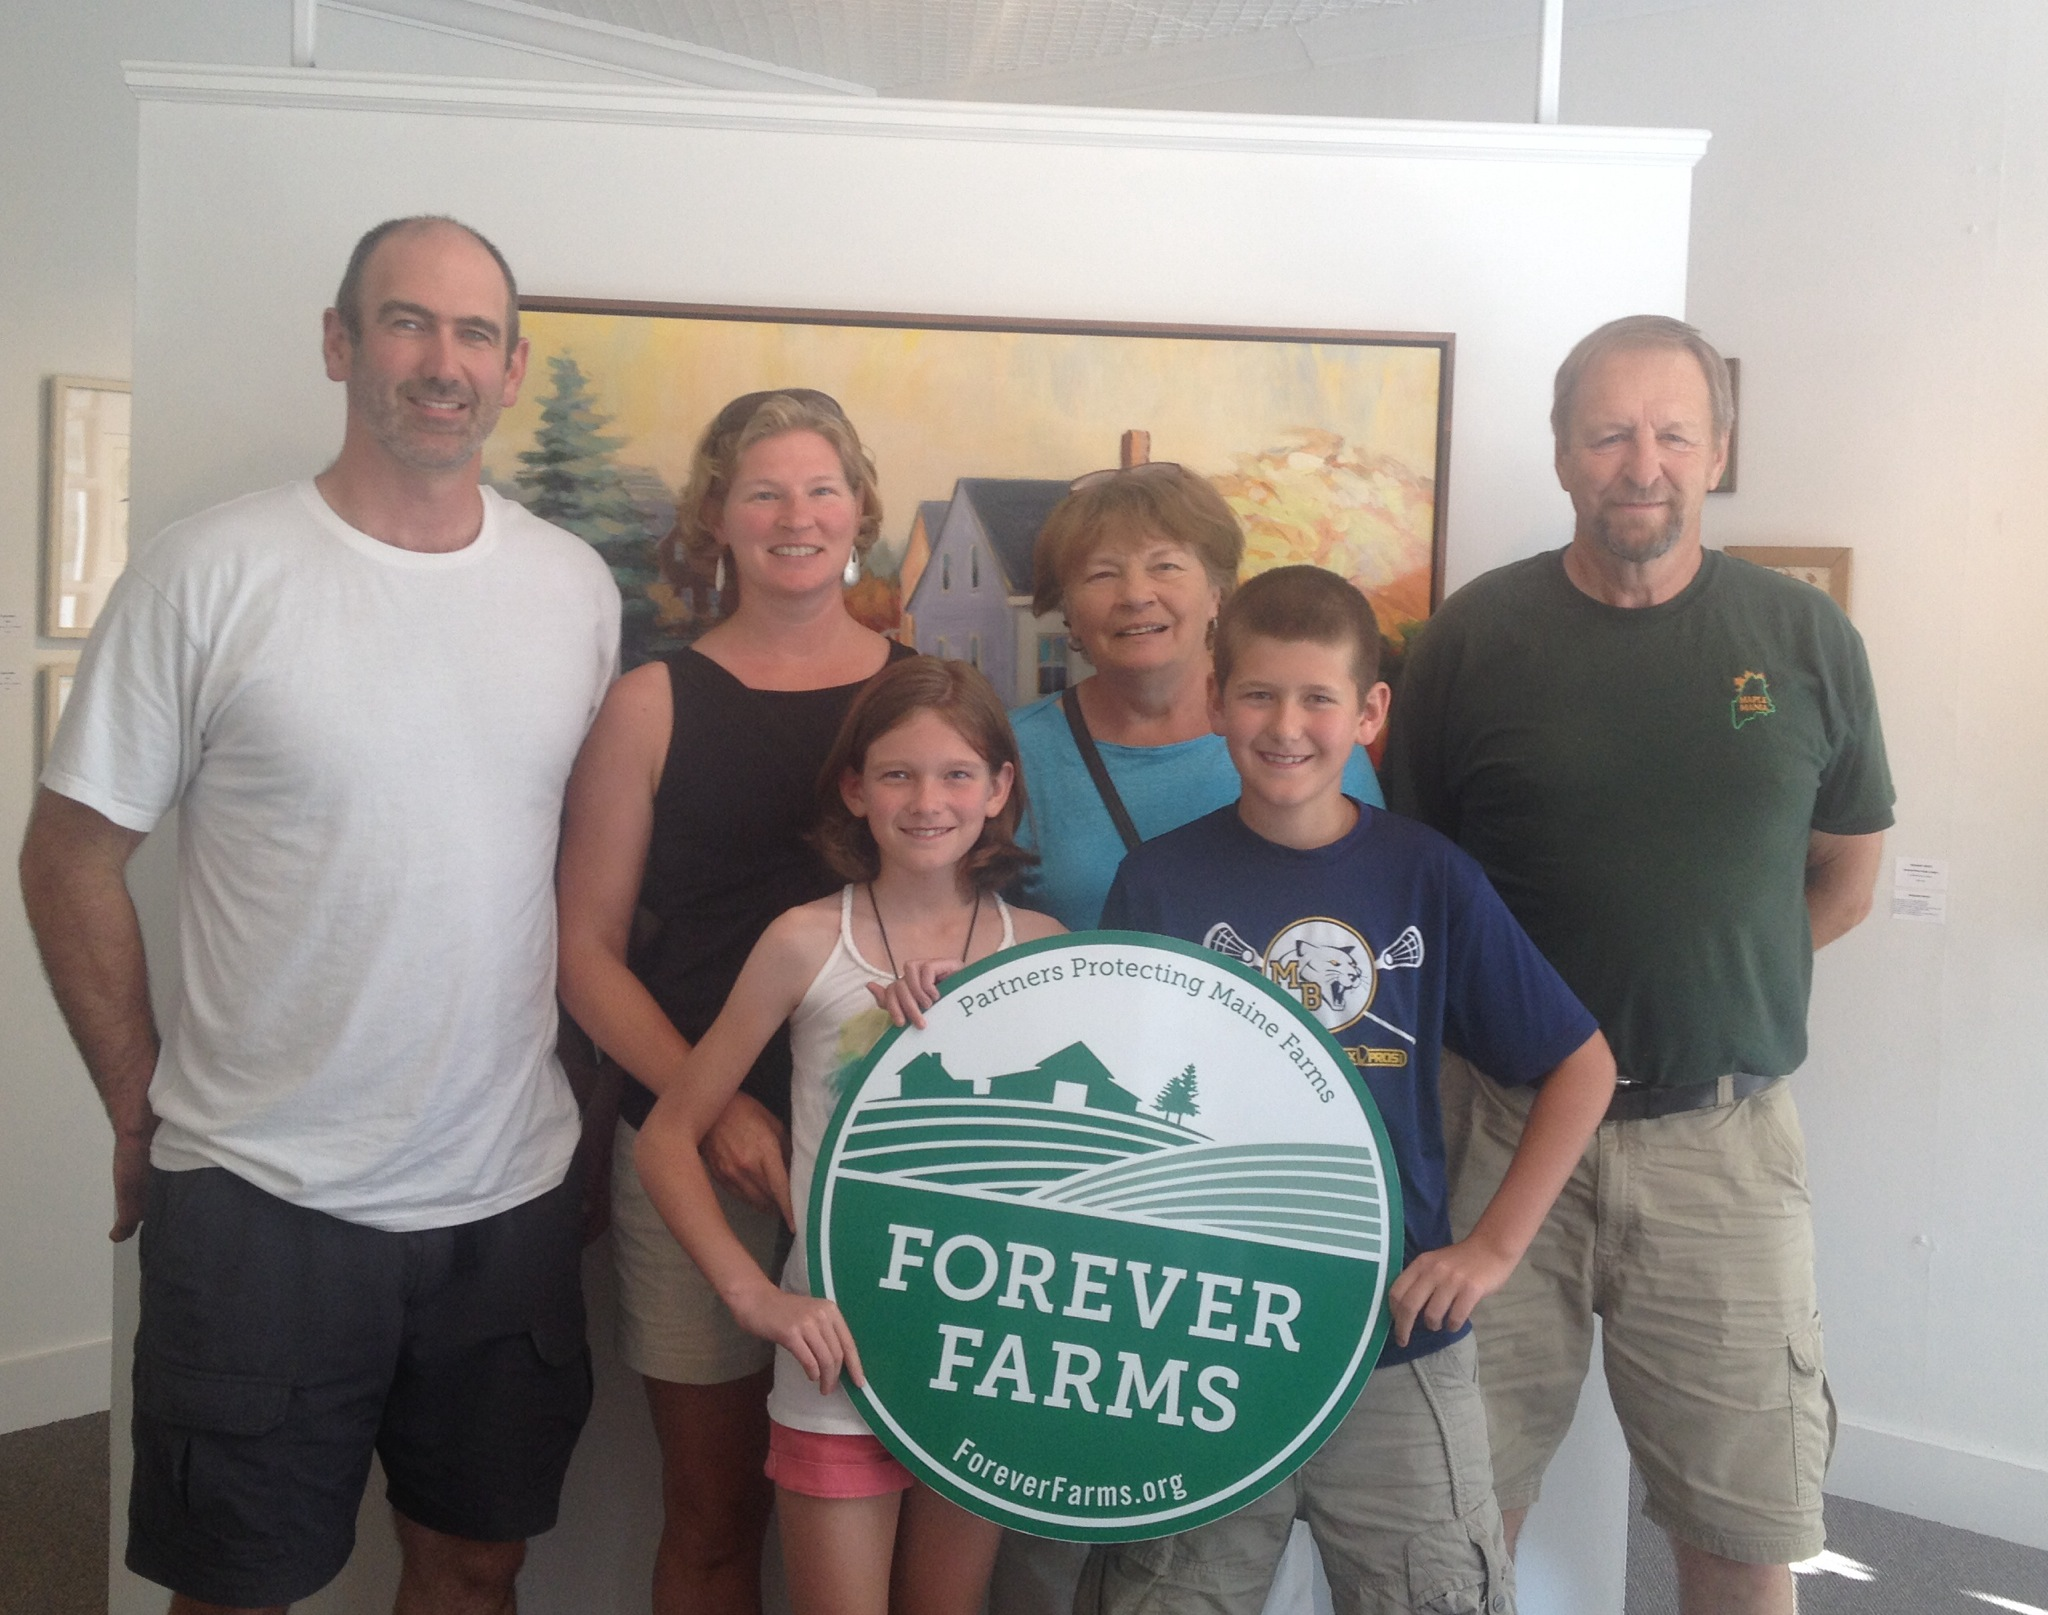 Family Farm Protected For New Generations